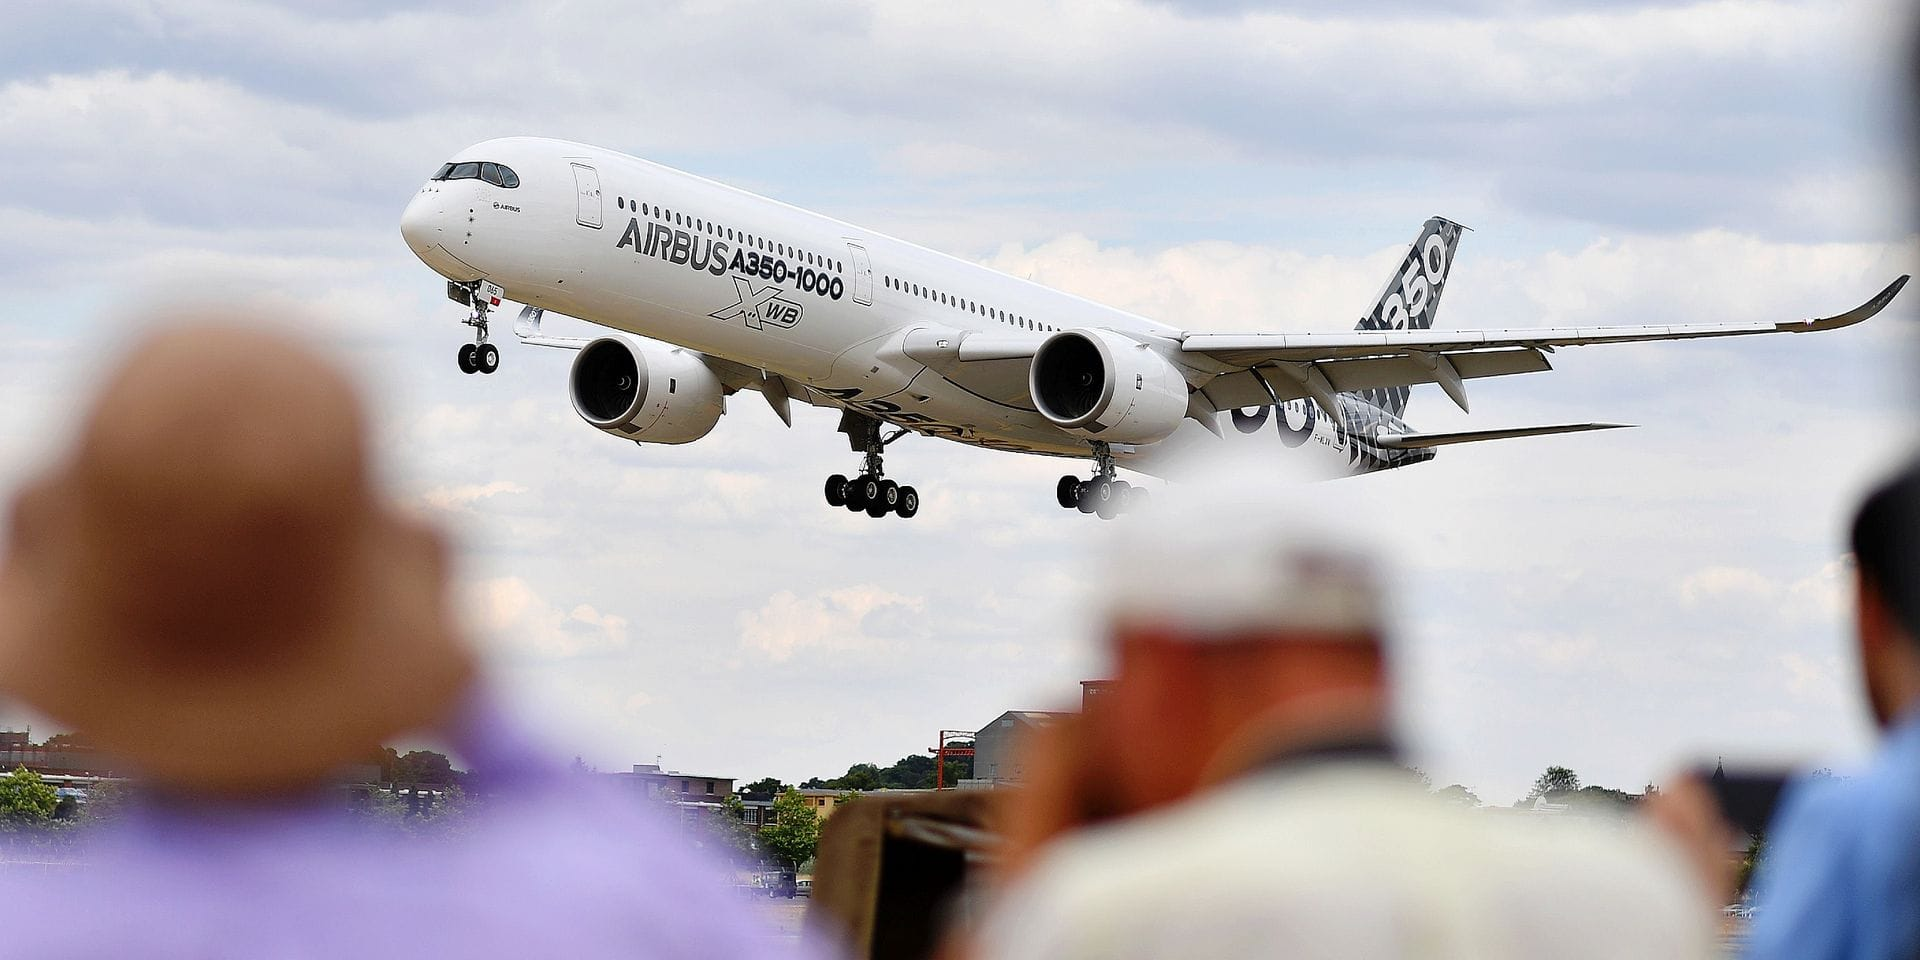 Visitors watch as an AirBus A330-900 Neo lands during the Farnborough Airshow, south west of London, on July 16, 2018. / AFP PHOTO / BEN STANSALL